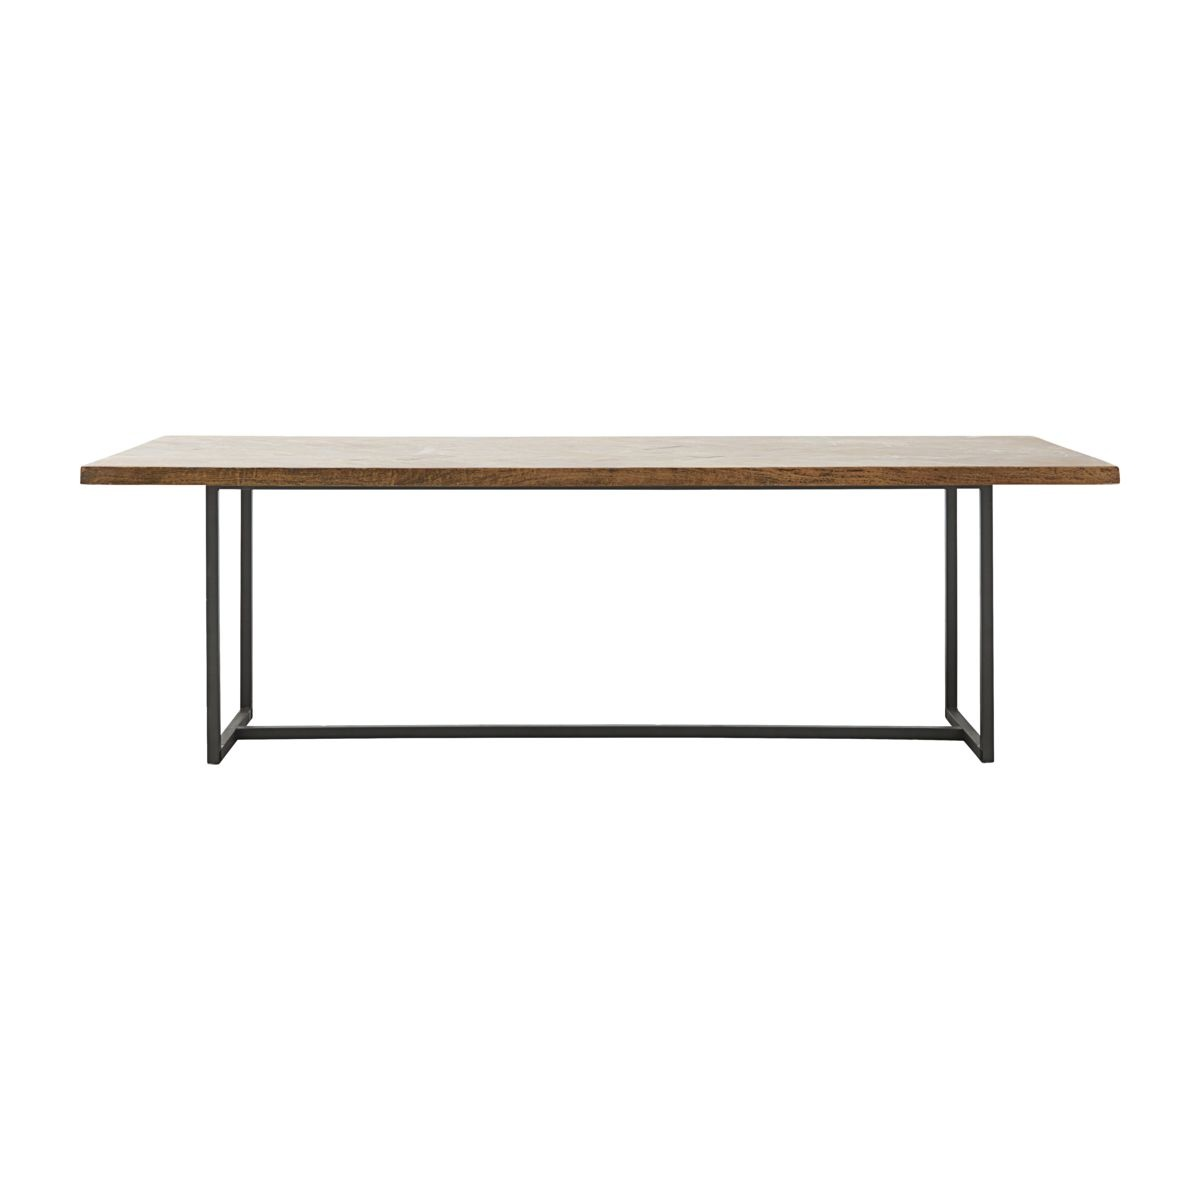 House Doctor Dining room table - Wood - 240x90xh74cm - House Doctor